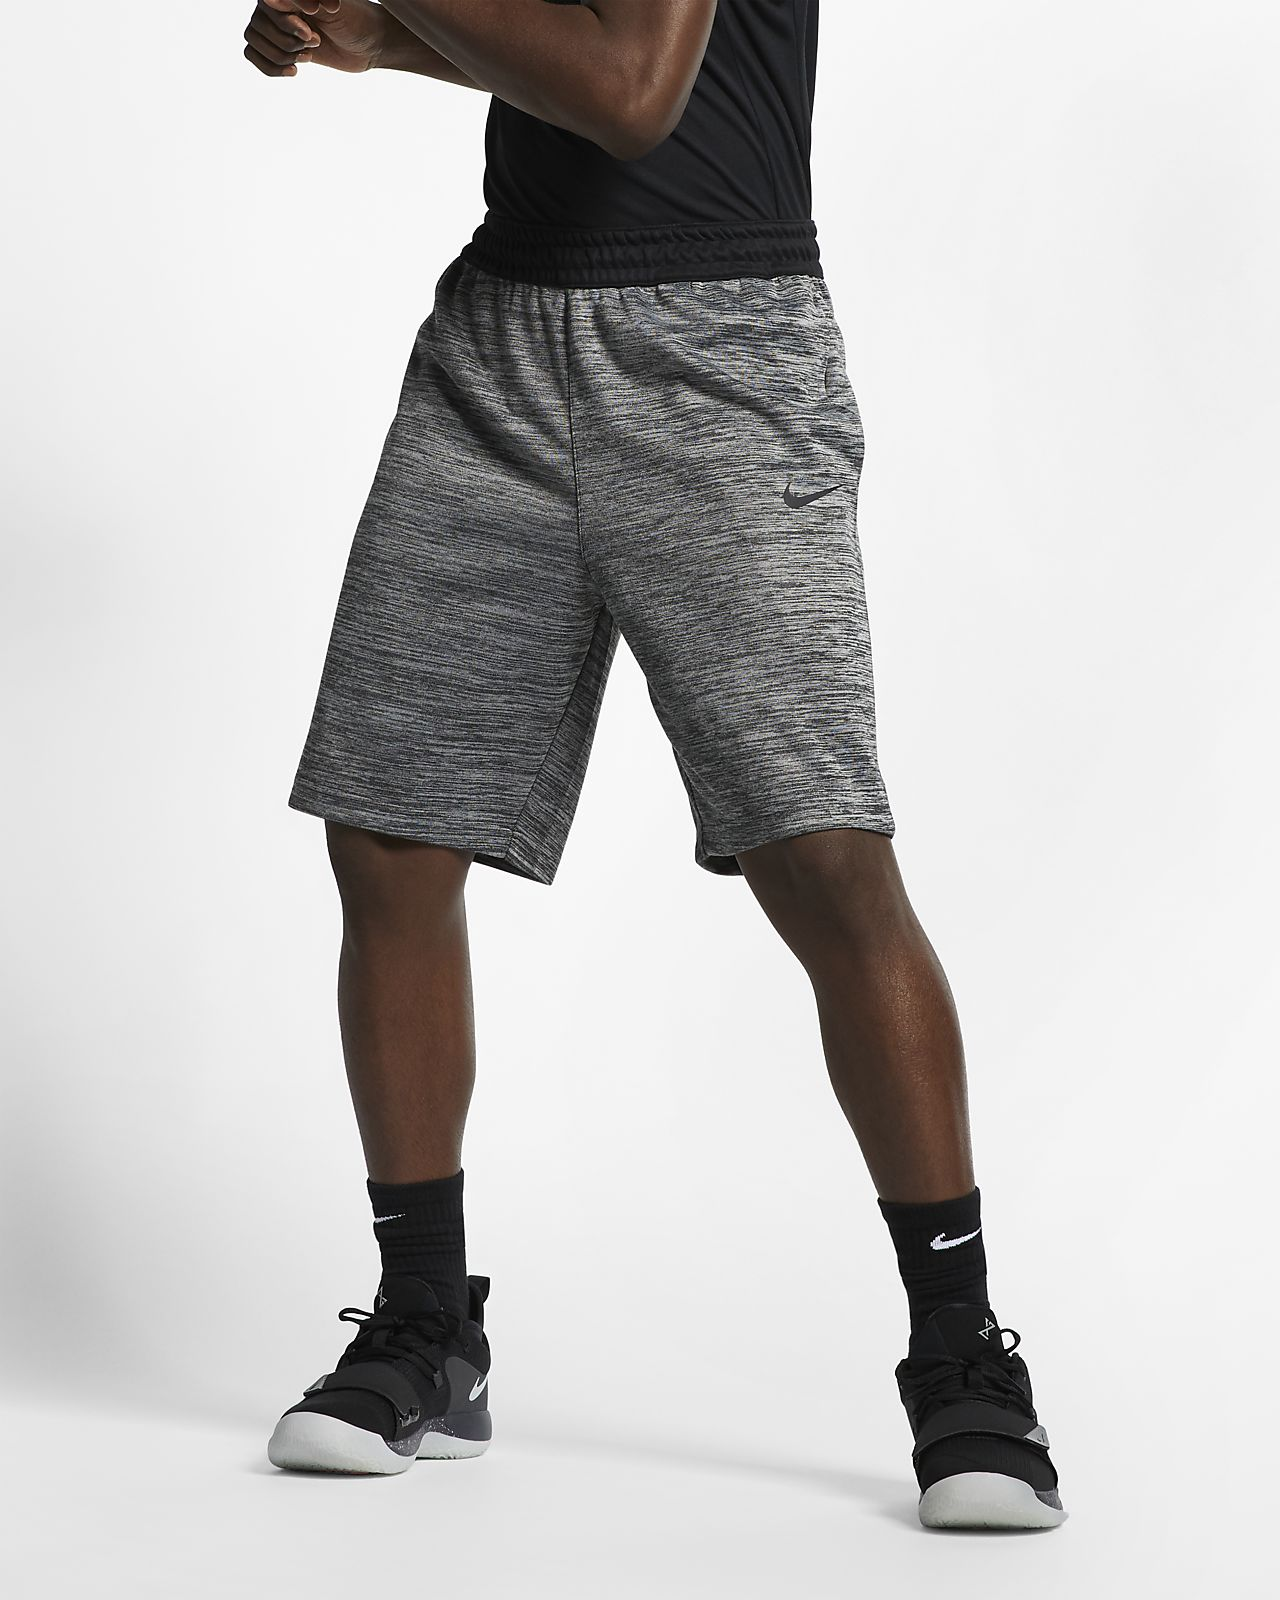 best loved c4e80 b59a2 Mens Basketball Shorts. Nike Spotlight